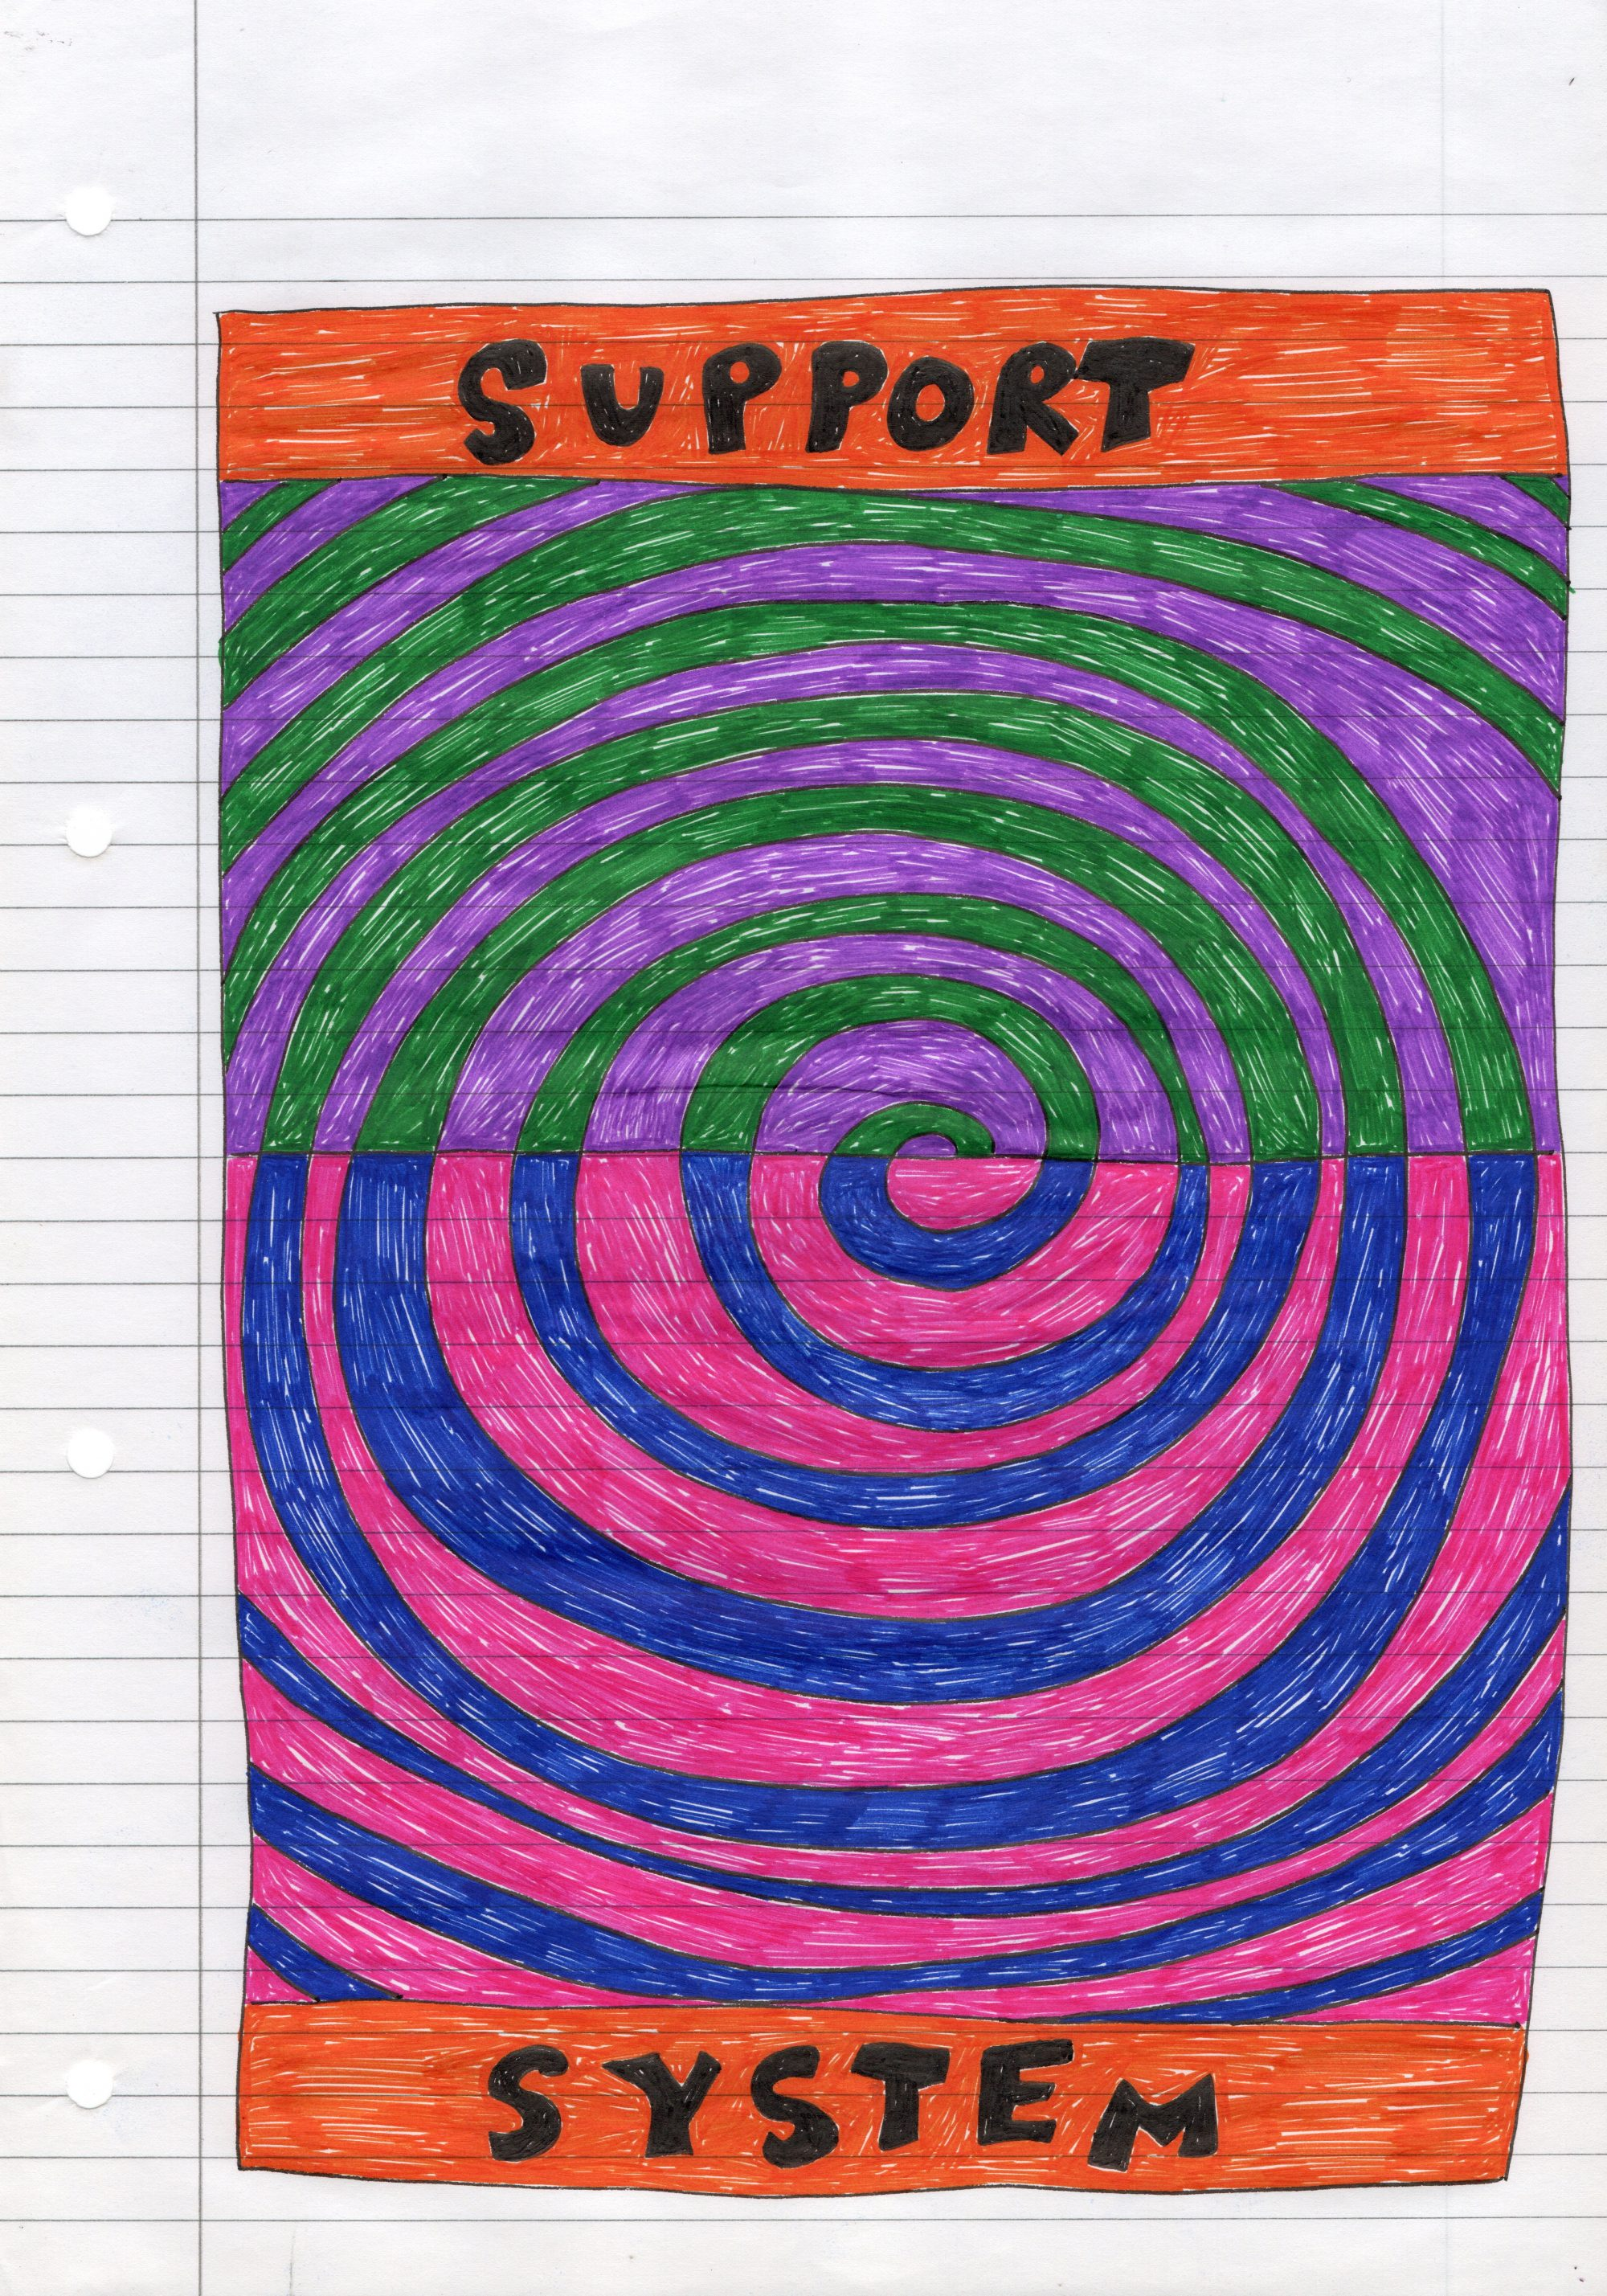 """A sheet of white lined office paper, leaving the margin clear, is filled with a multicoloured pen drawing. Filling the middle is a large spiral cut in half horizontally, with contrasting colours of pink, blue, green and purple filling the spiral on each side. Surrounding this reads: """"SUPPORT SYSTEM"""" in black pen on an orange background."""